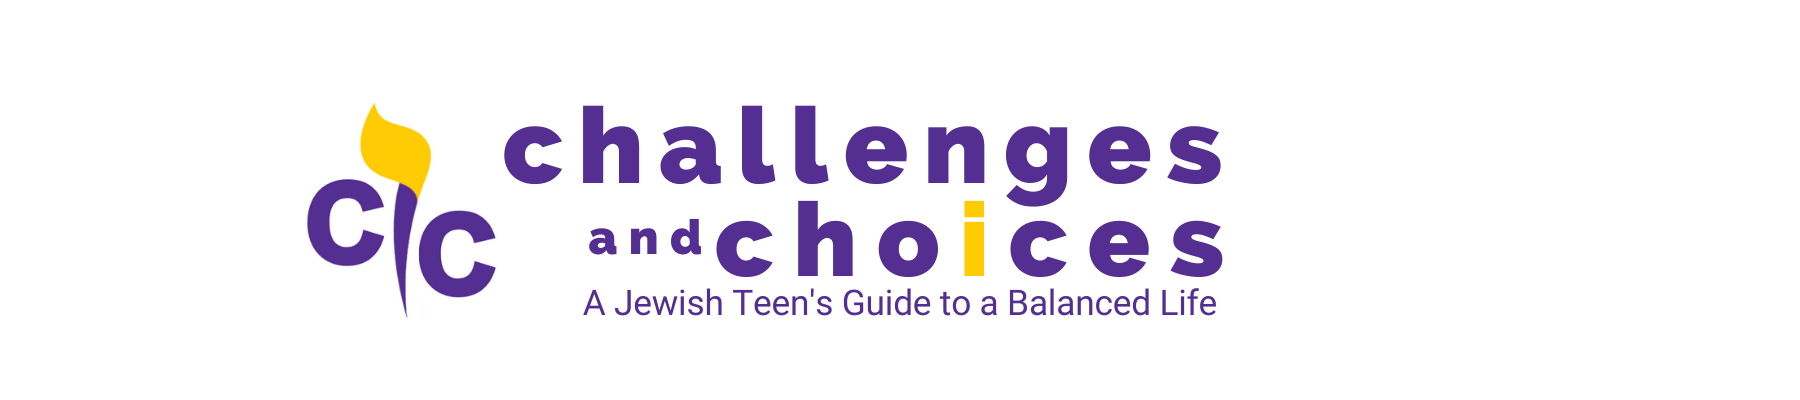 Copy of Copy of Challenges and choicesbanner (1)